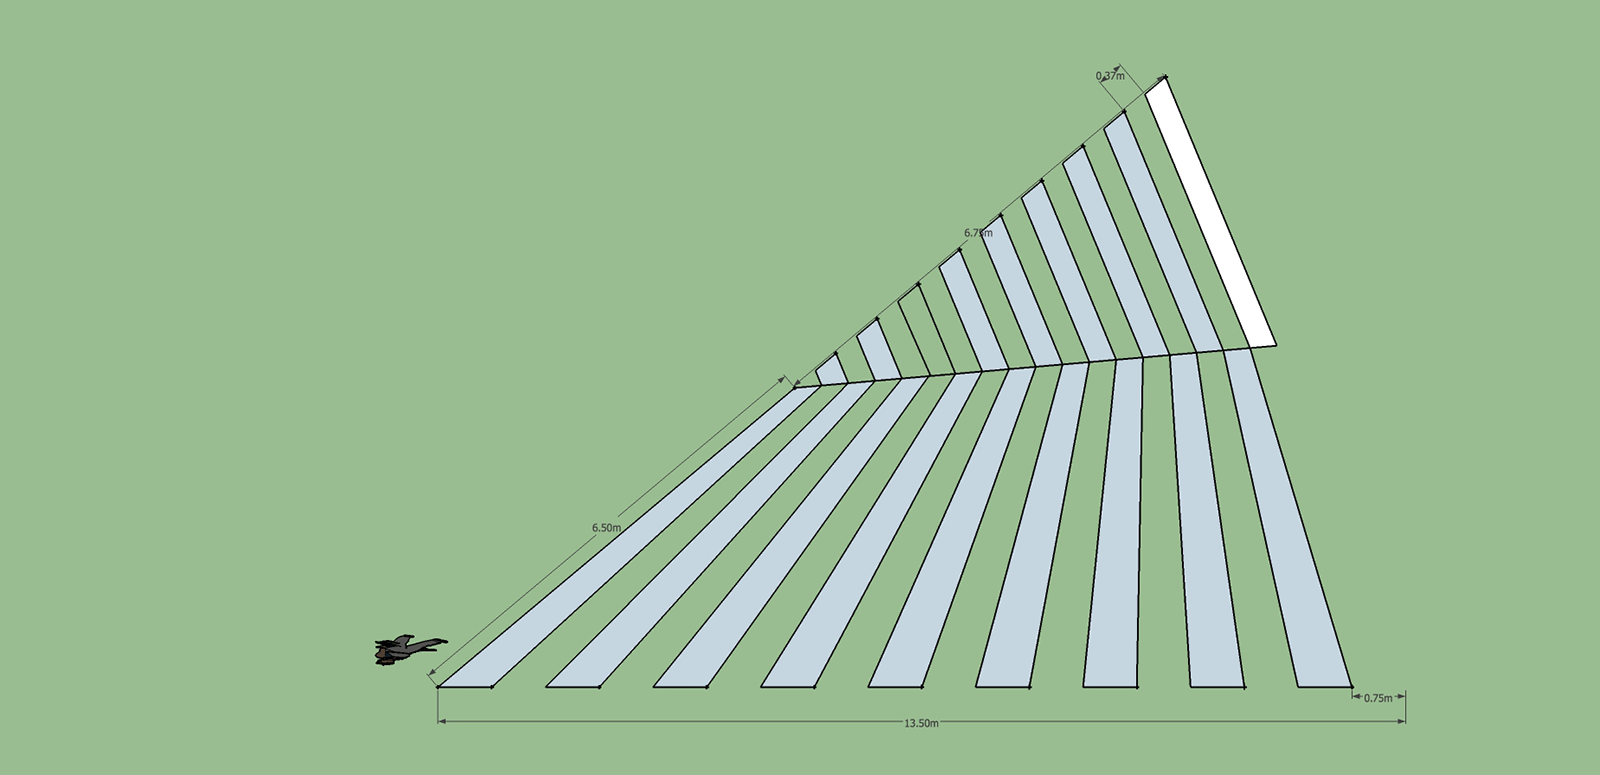 Diagram of a person walking in space on a large green field, alongside a massive triangle delineated by two blocks of parallel lines